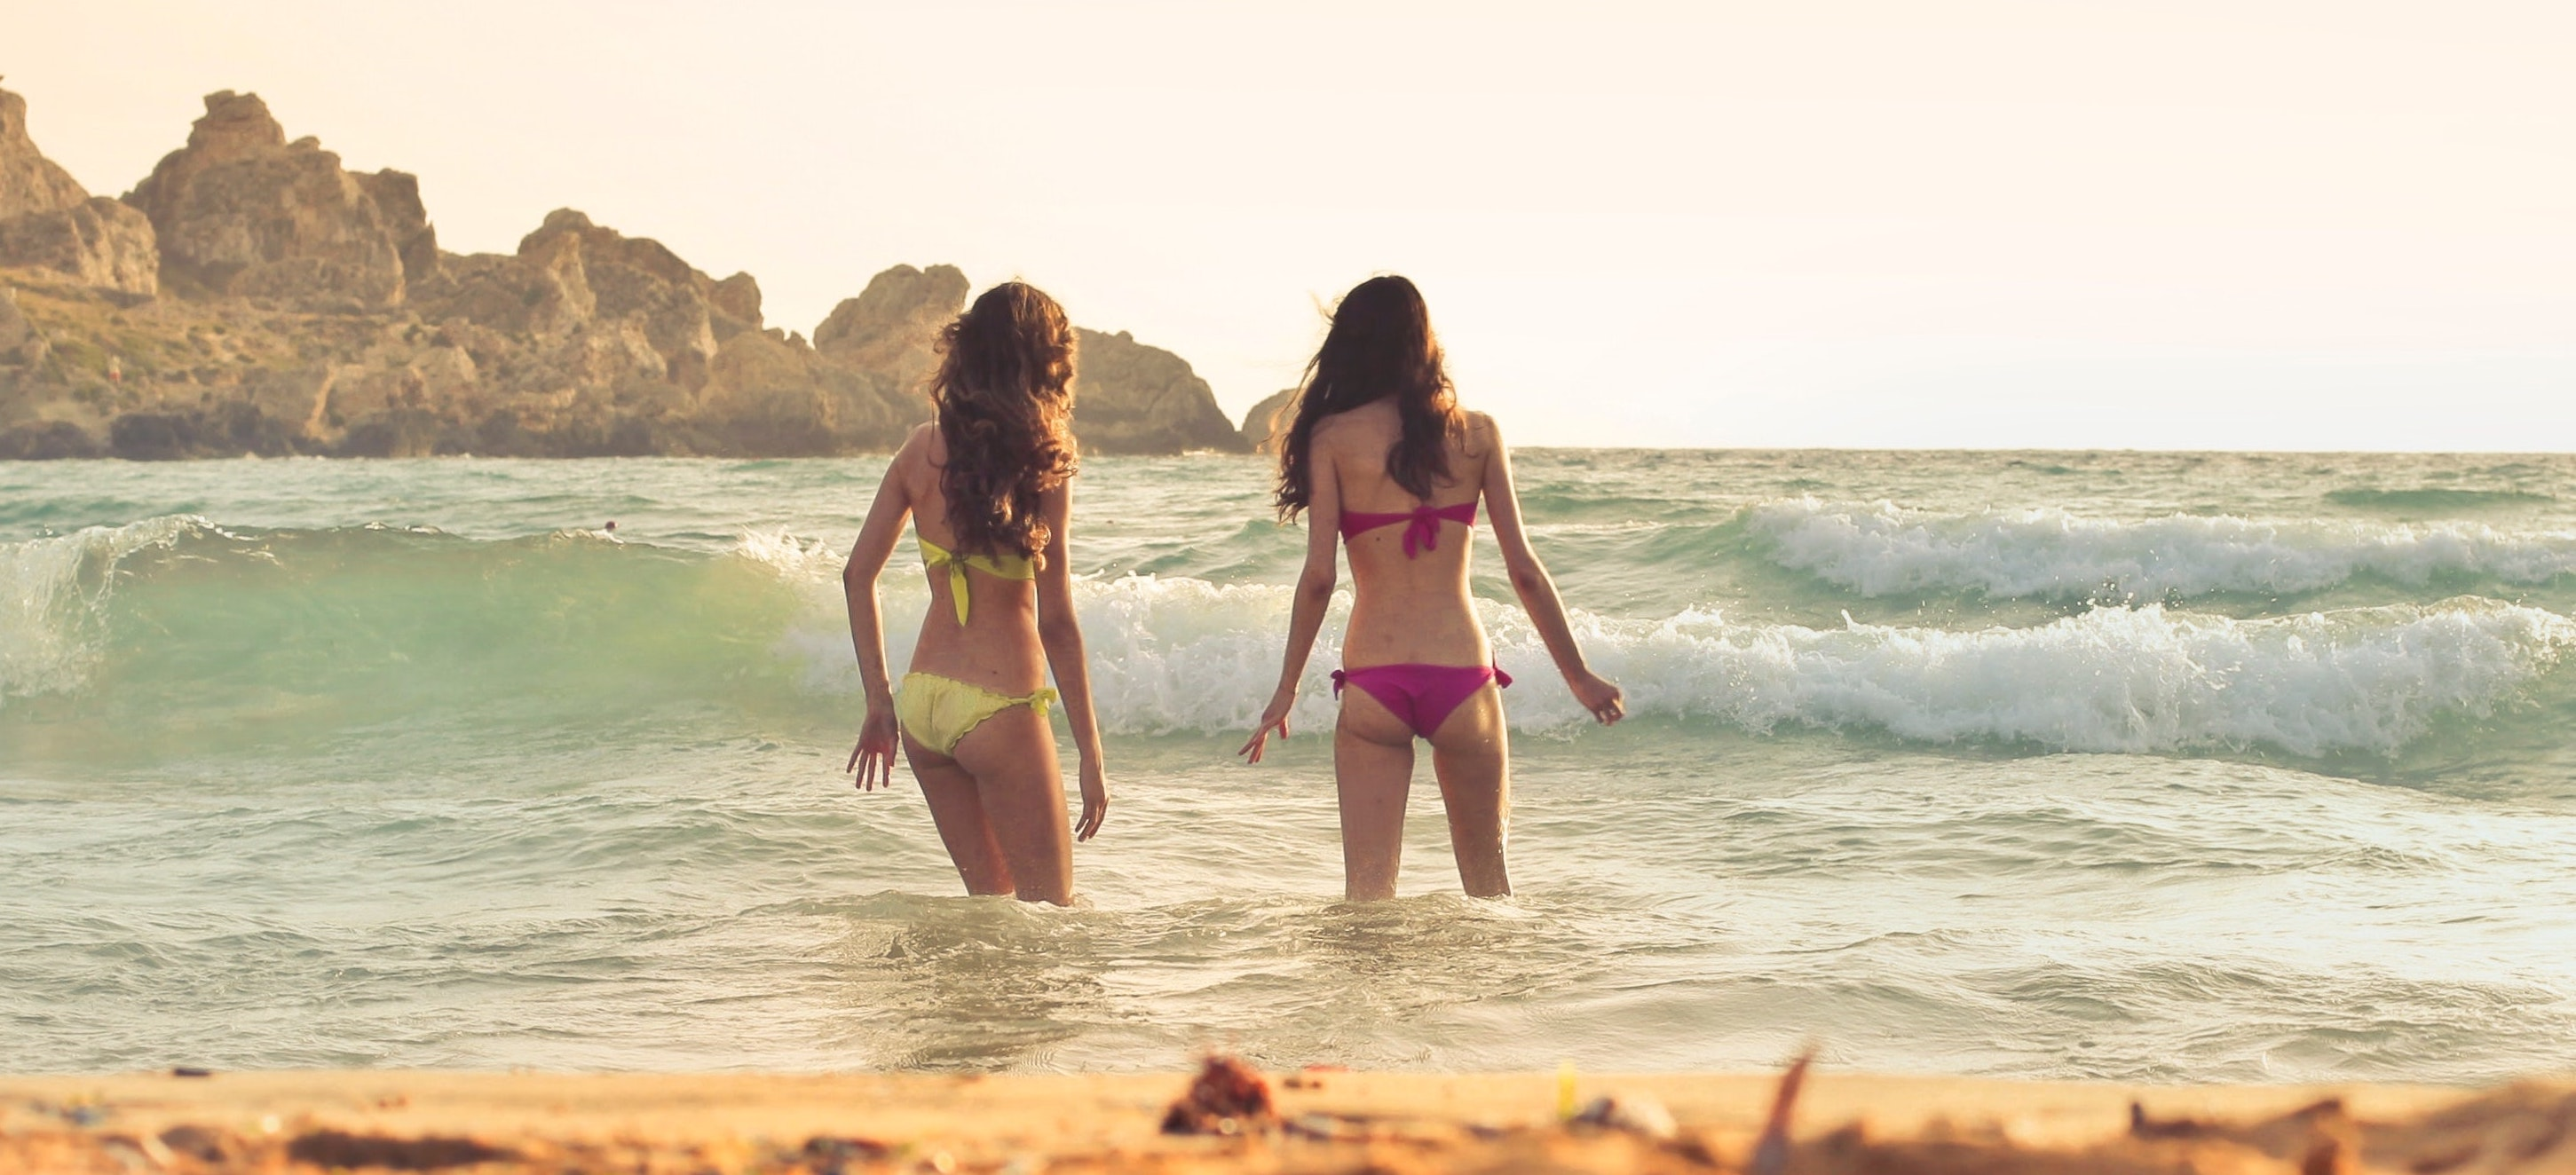 5 Biggest Trends in Swimwear Retail for 2019